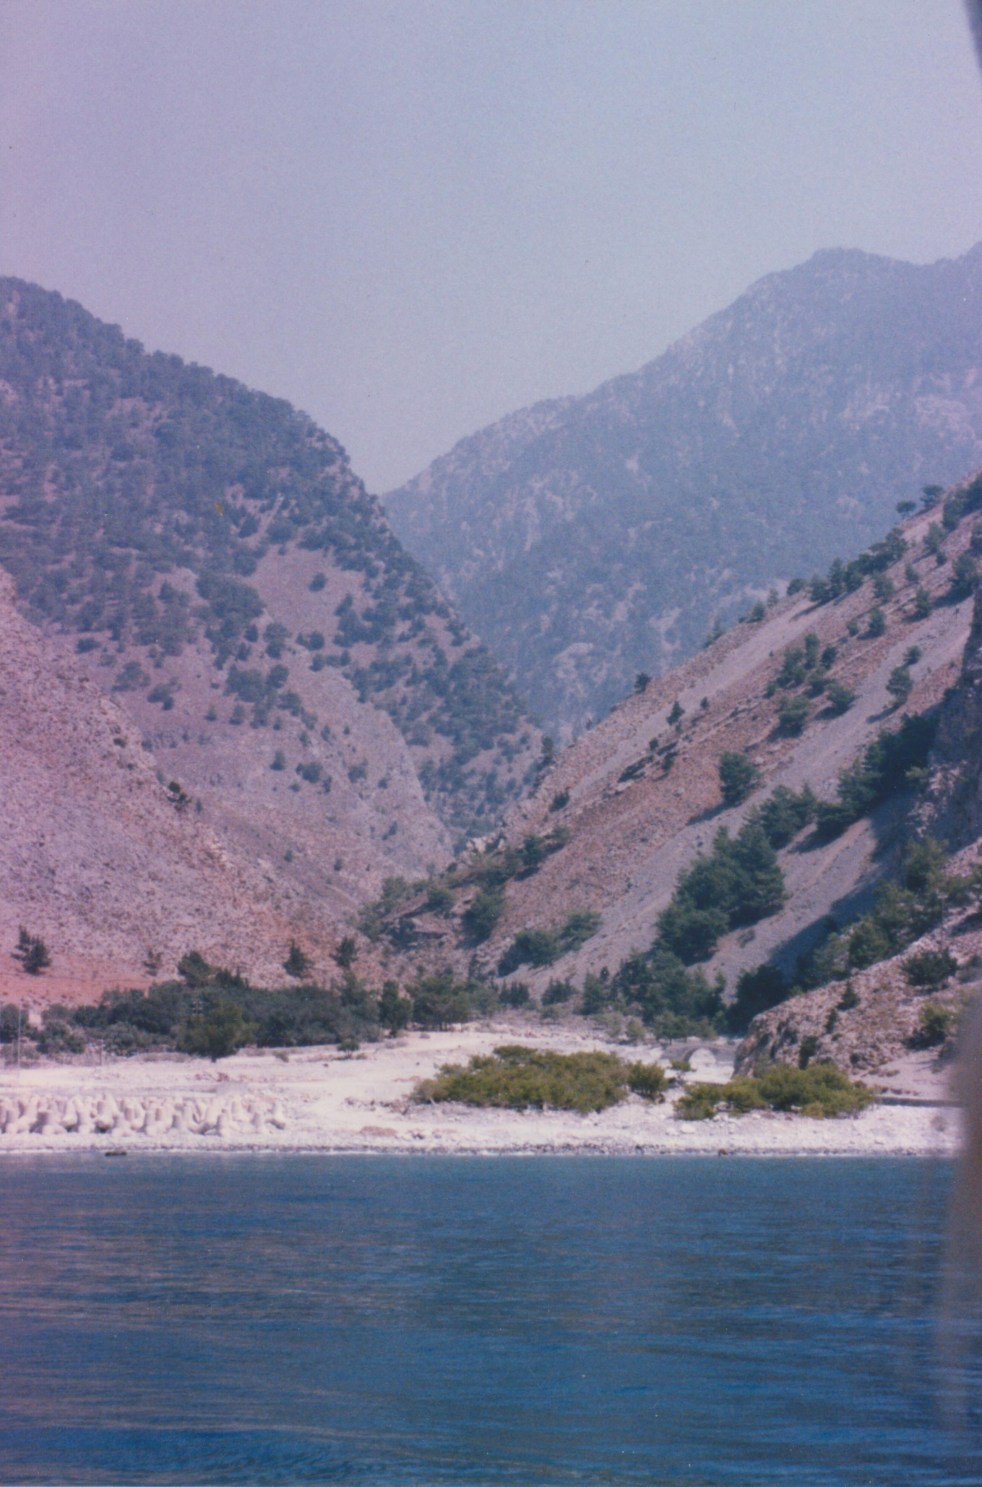 a view from the sea of Samariá Gorge in Crete, Greece